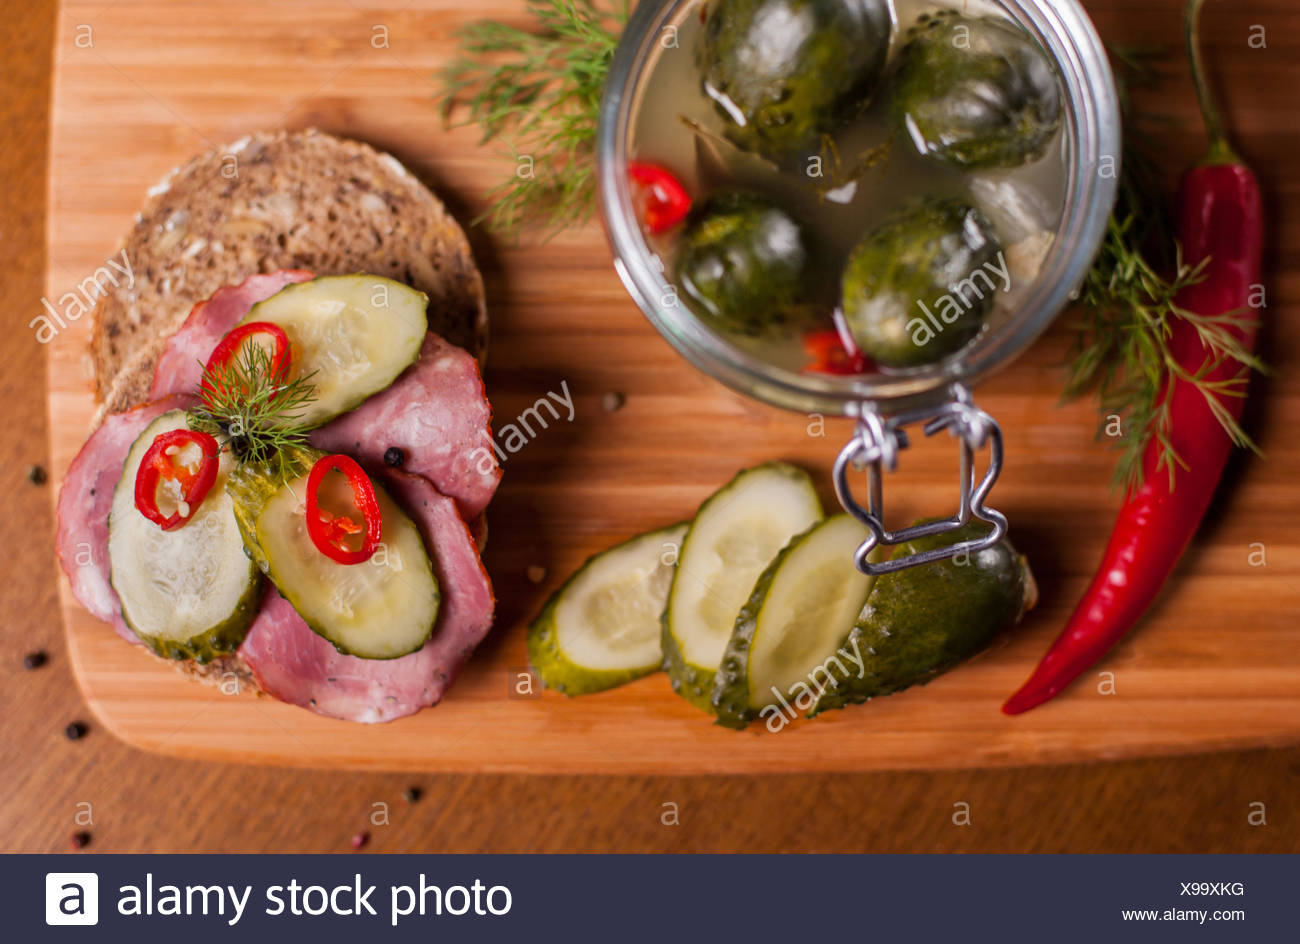 Sandwich with homemade products on cutting board. Debica, Poland - Stock Image